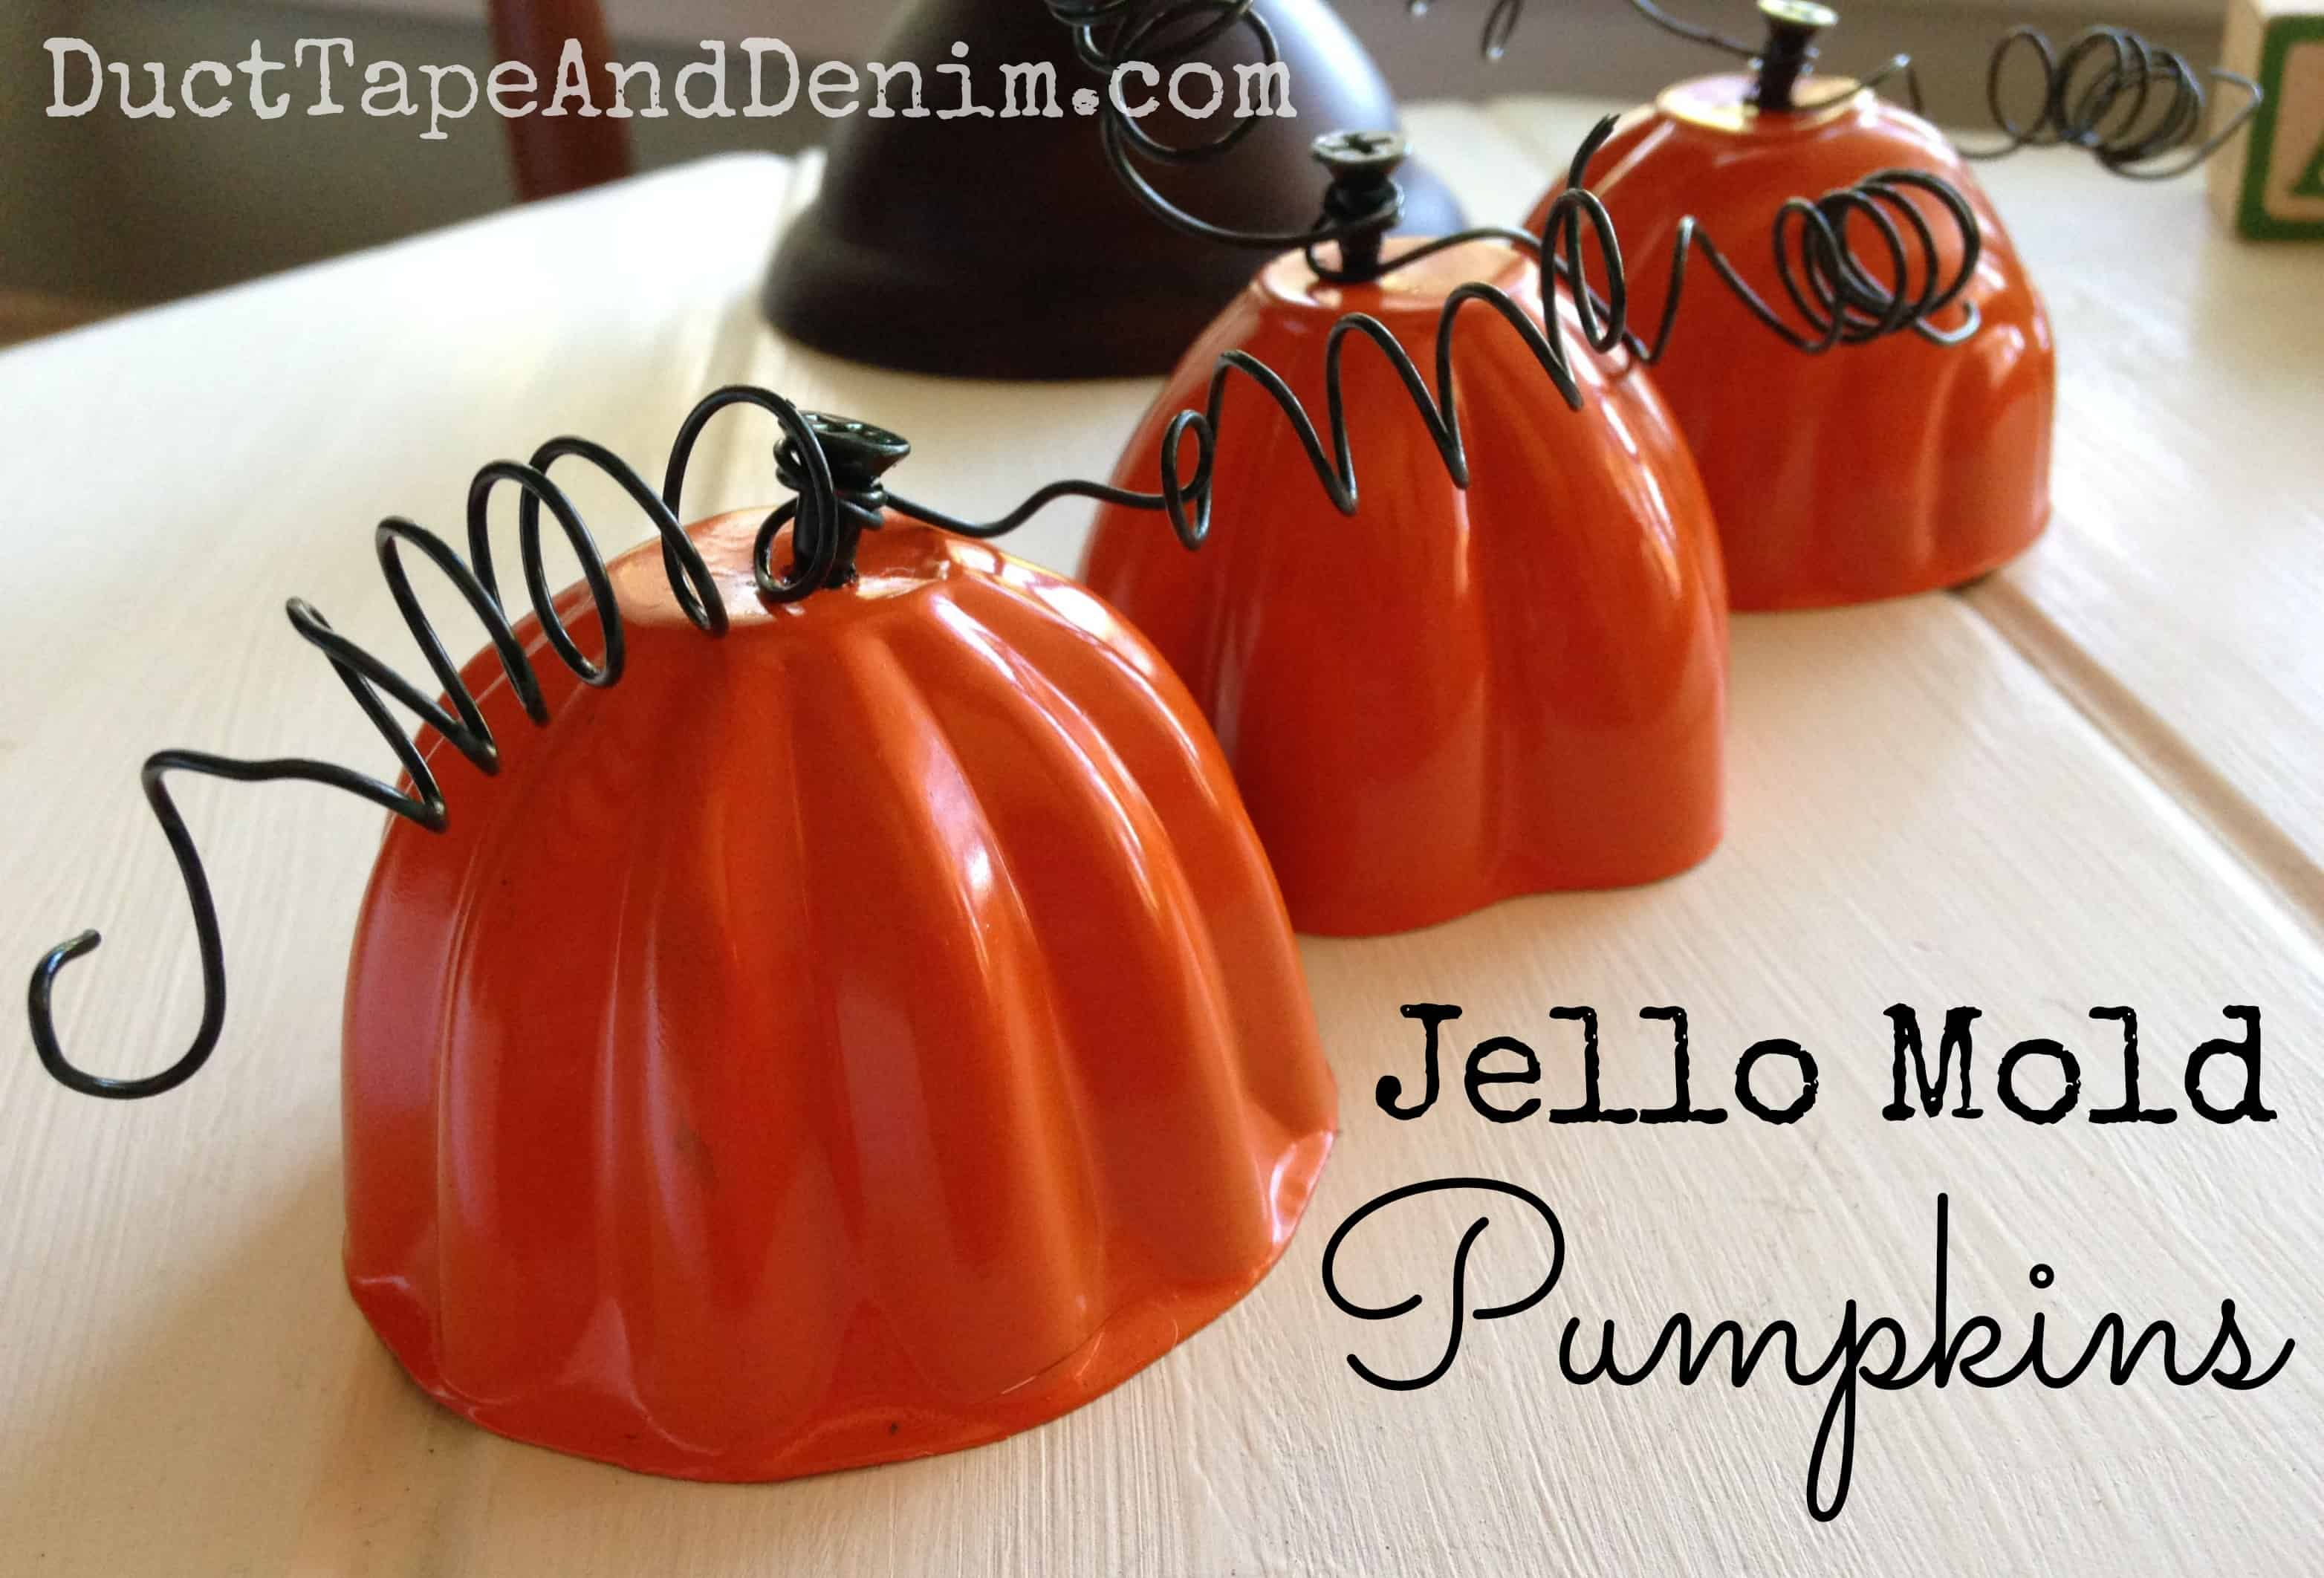 Jello Mold Pumpkins | Upcycled Fall DIY Project with Spray Paint